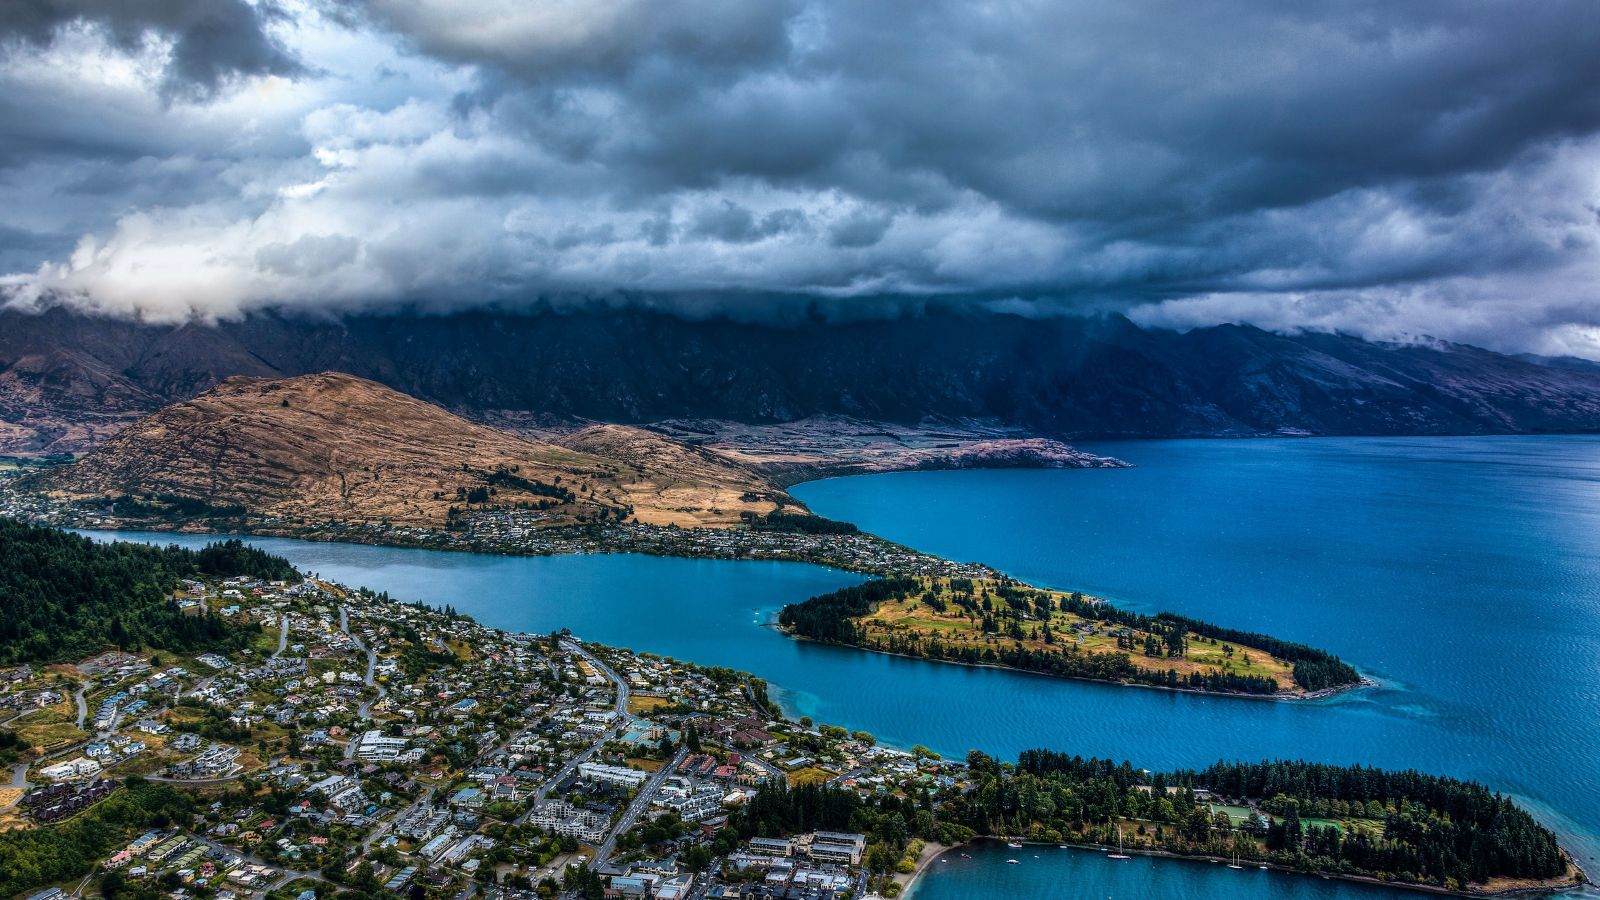 Queenstown from aeroplane view - water, hills and city with dark clouds in the sky